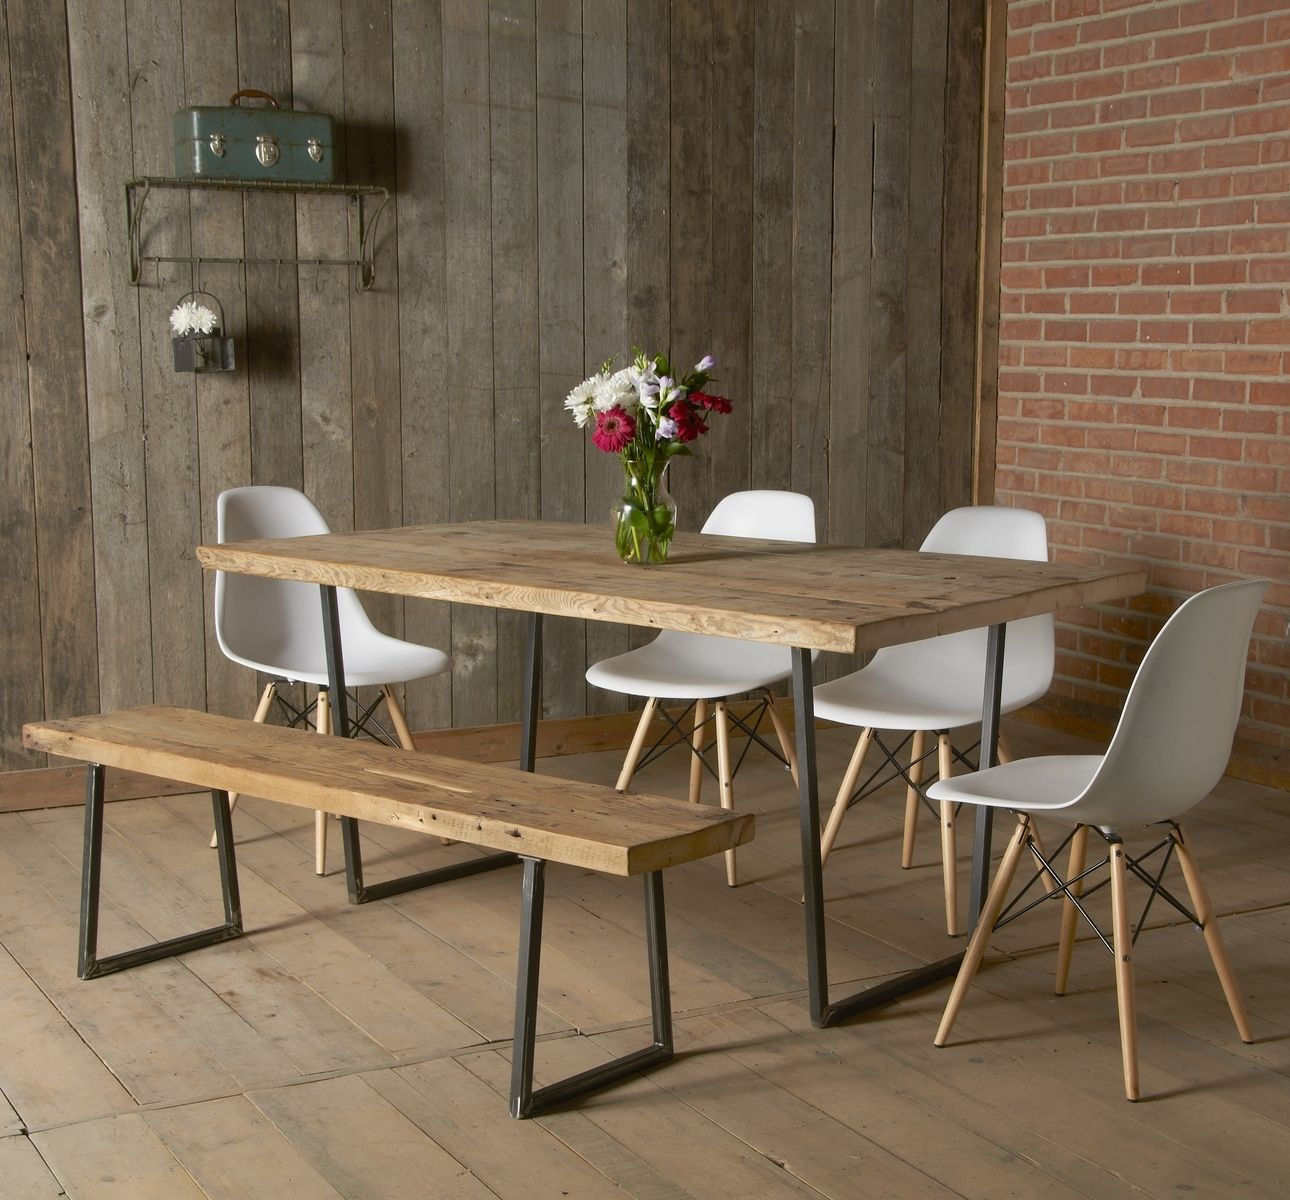 Adorable Vintage Wooden Dining Table Idea With Vintage White Dining Chairs  And Bench And Brick Wall